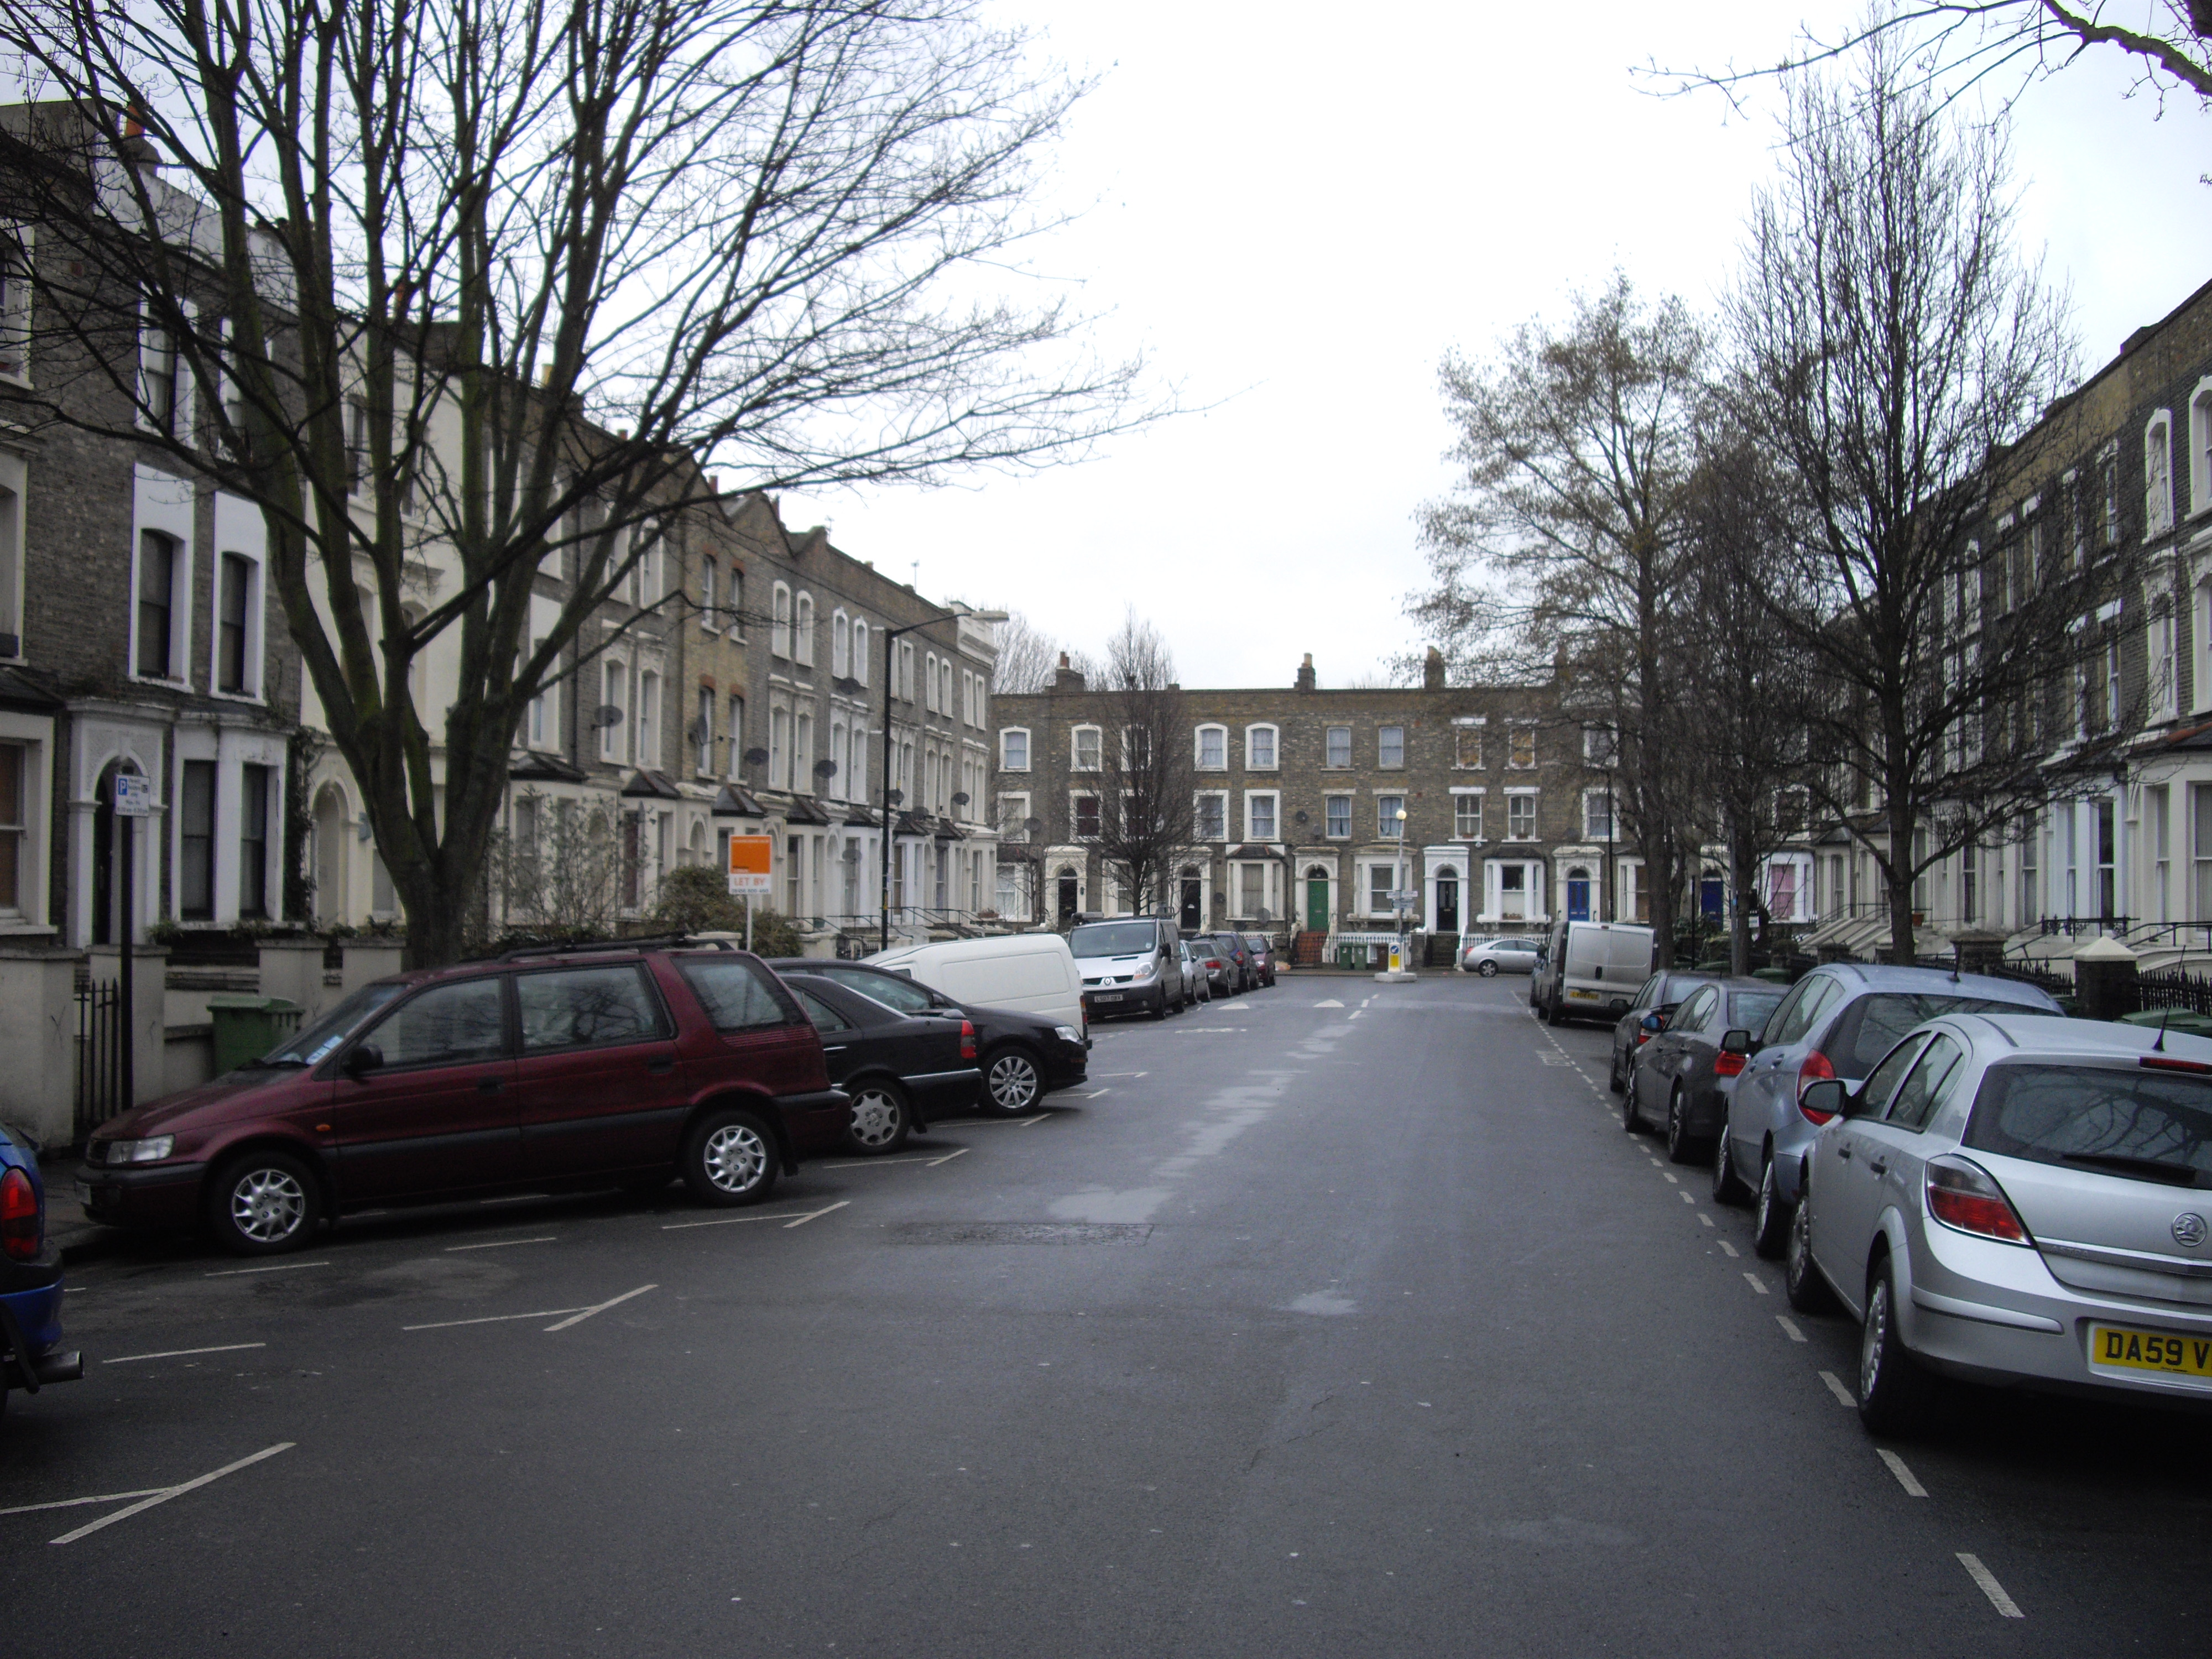 Vicarage_Grove_Camberwell_-_geograph.org.uk_-_1707564